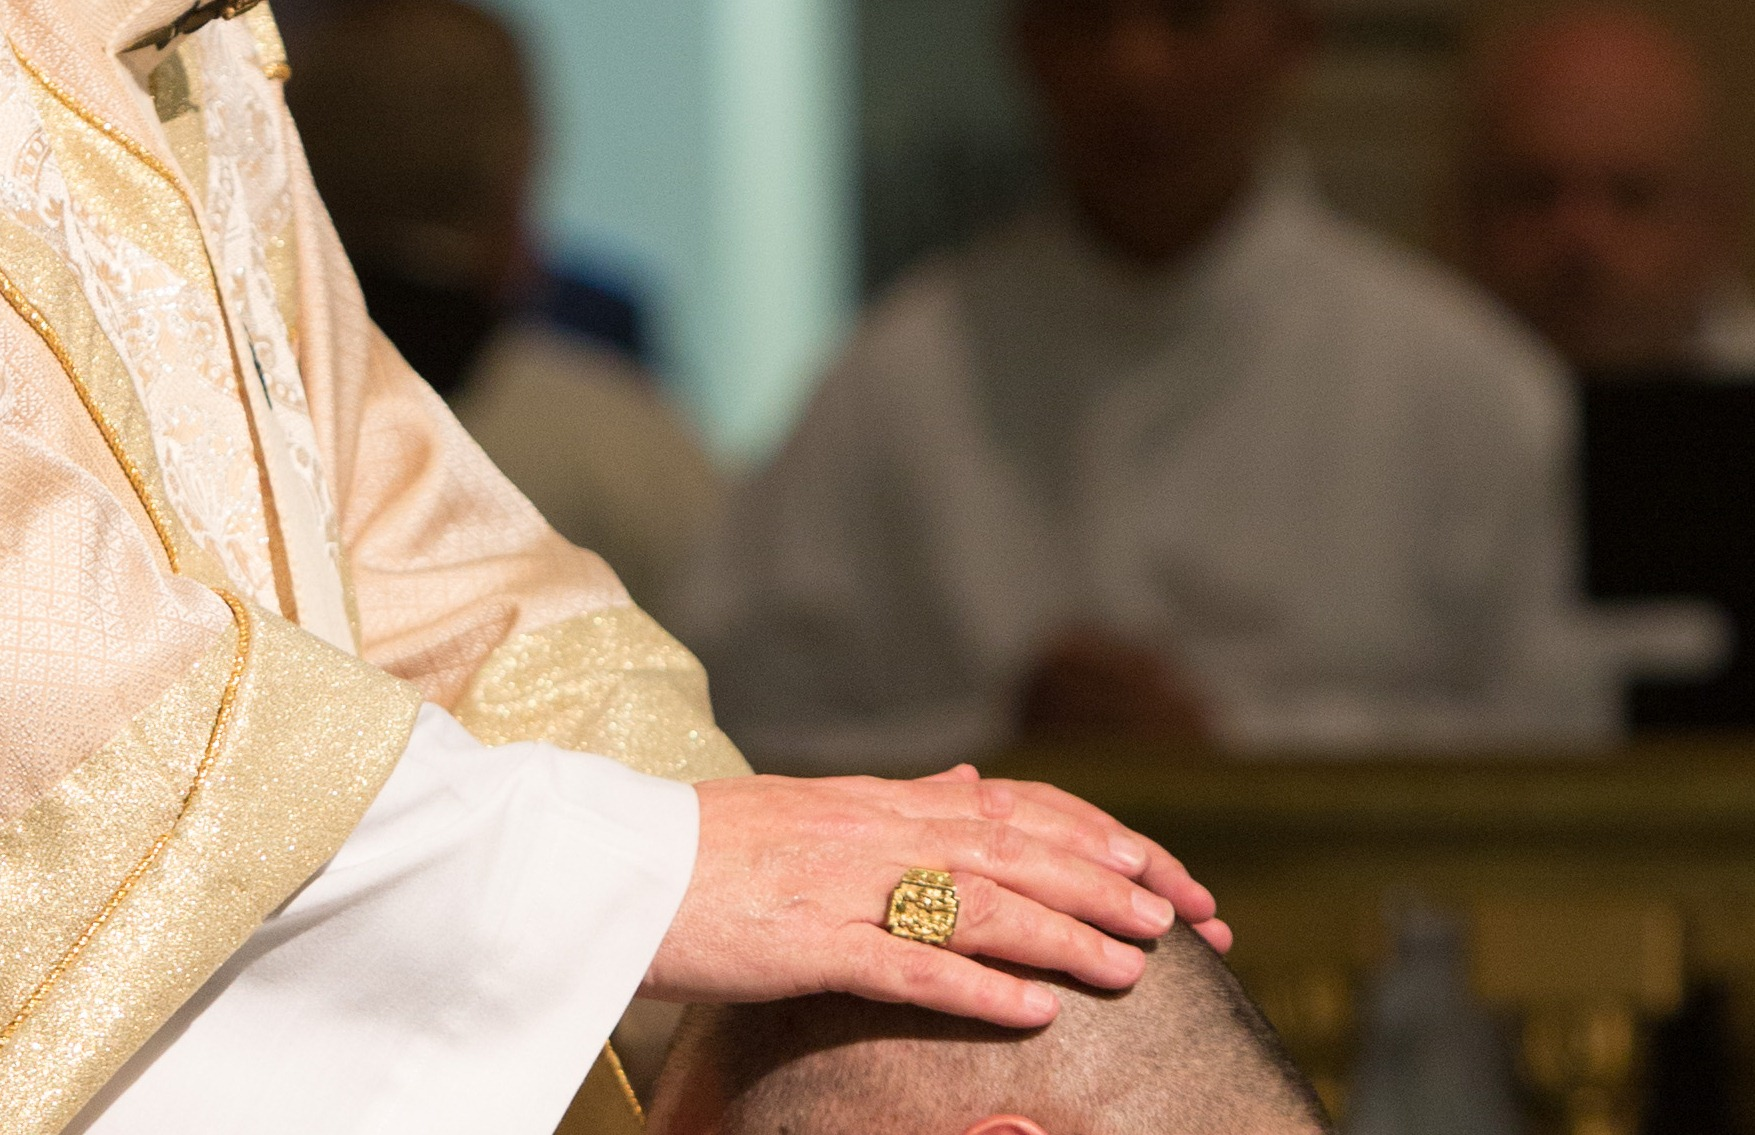 Picture shows the Ordaining Bishop laying his hands on the candidate to be ordained a deacon